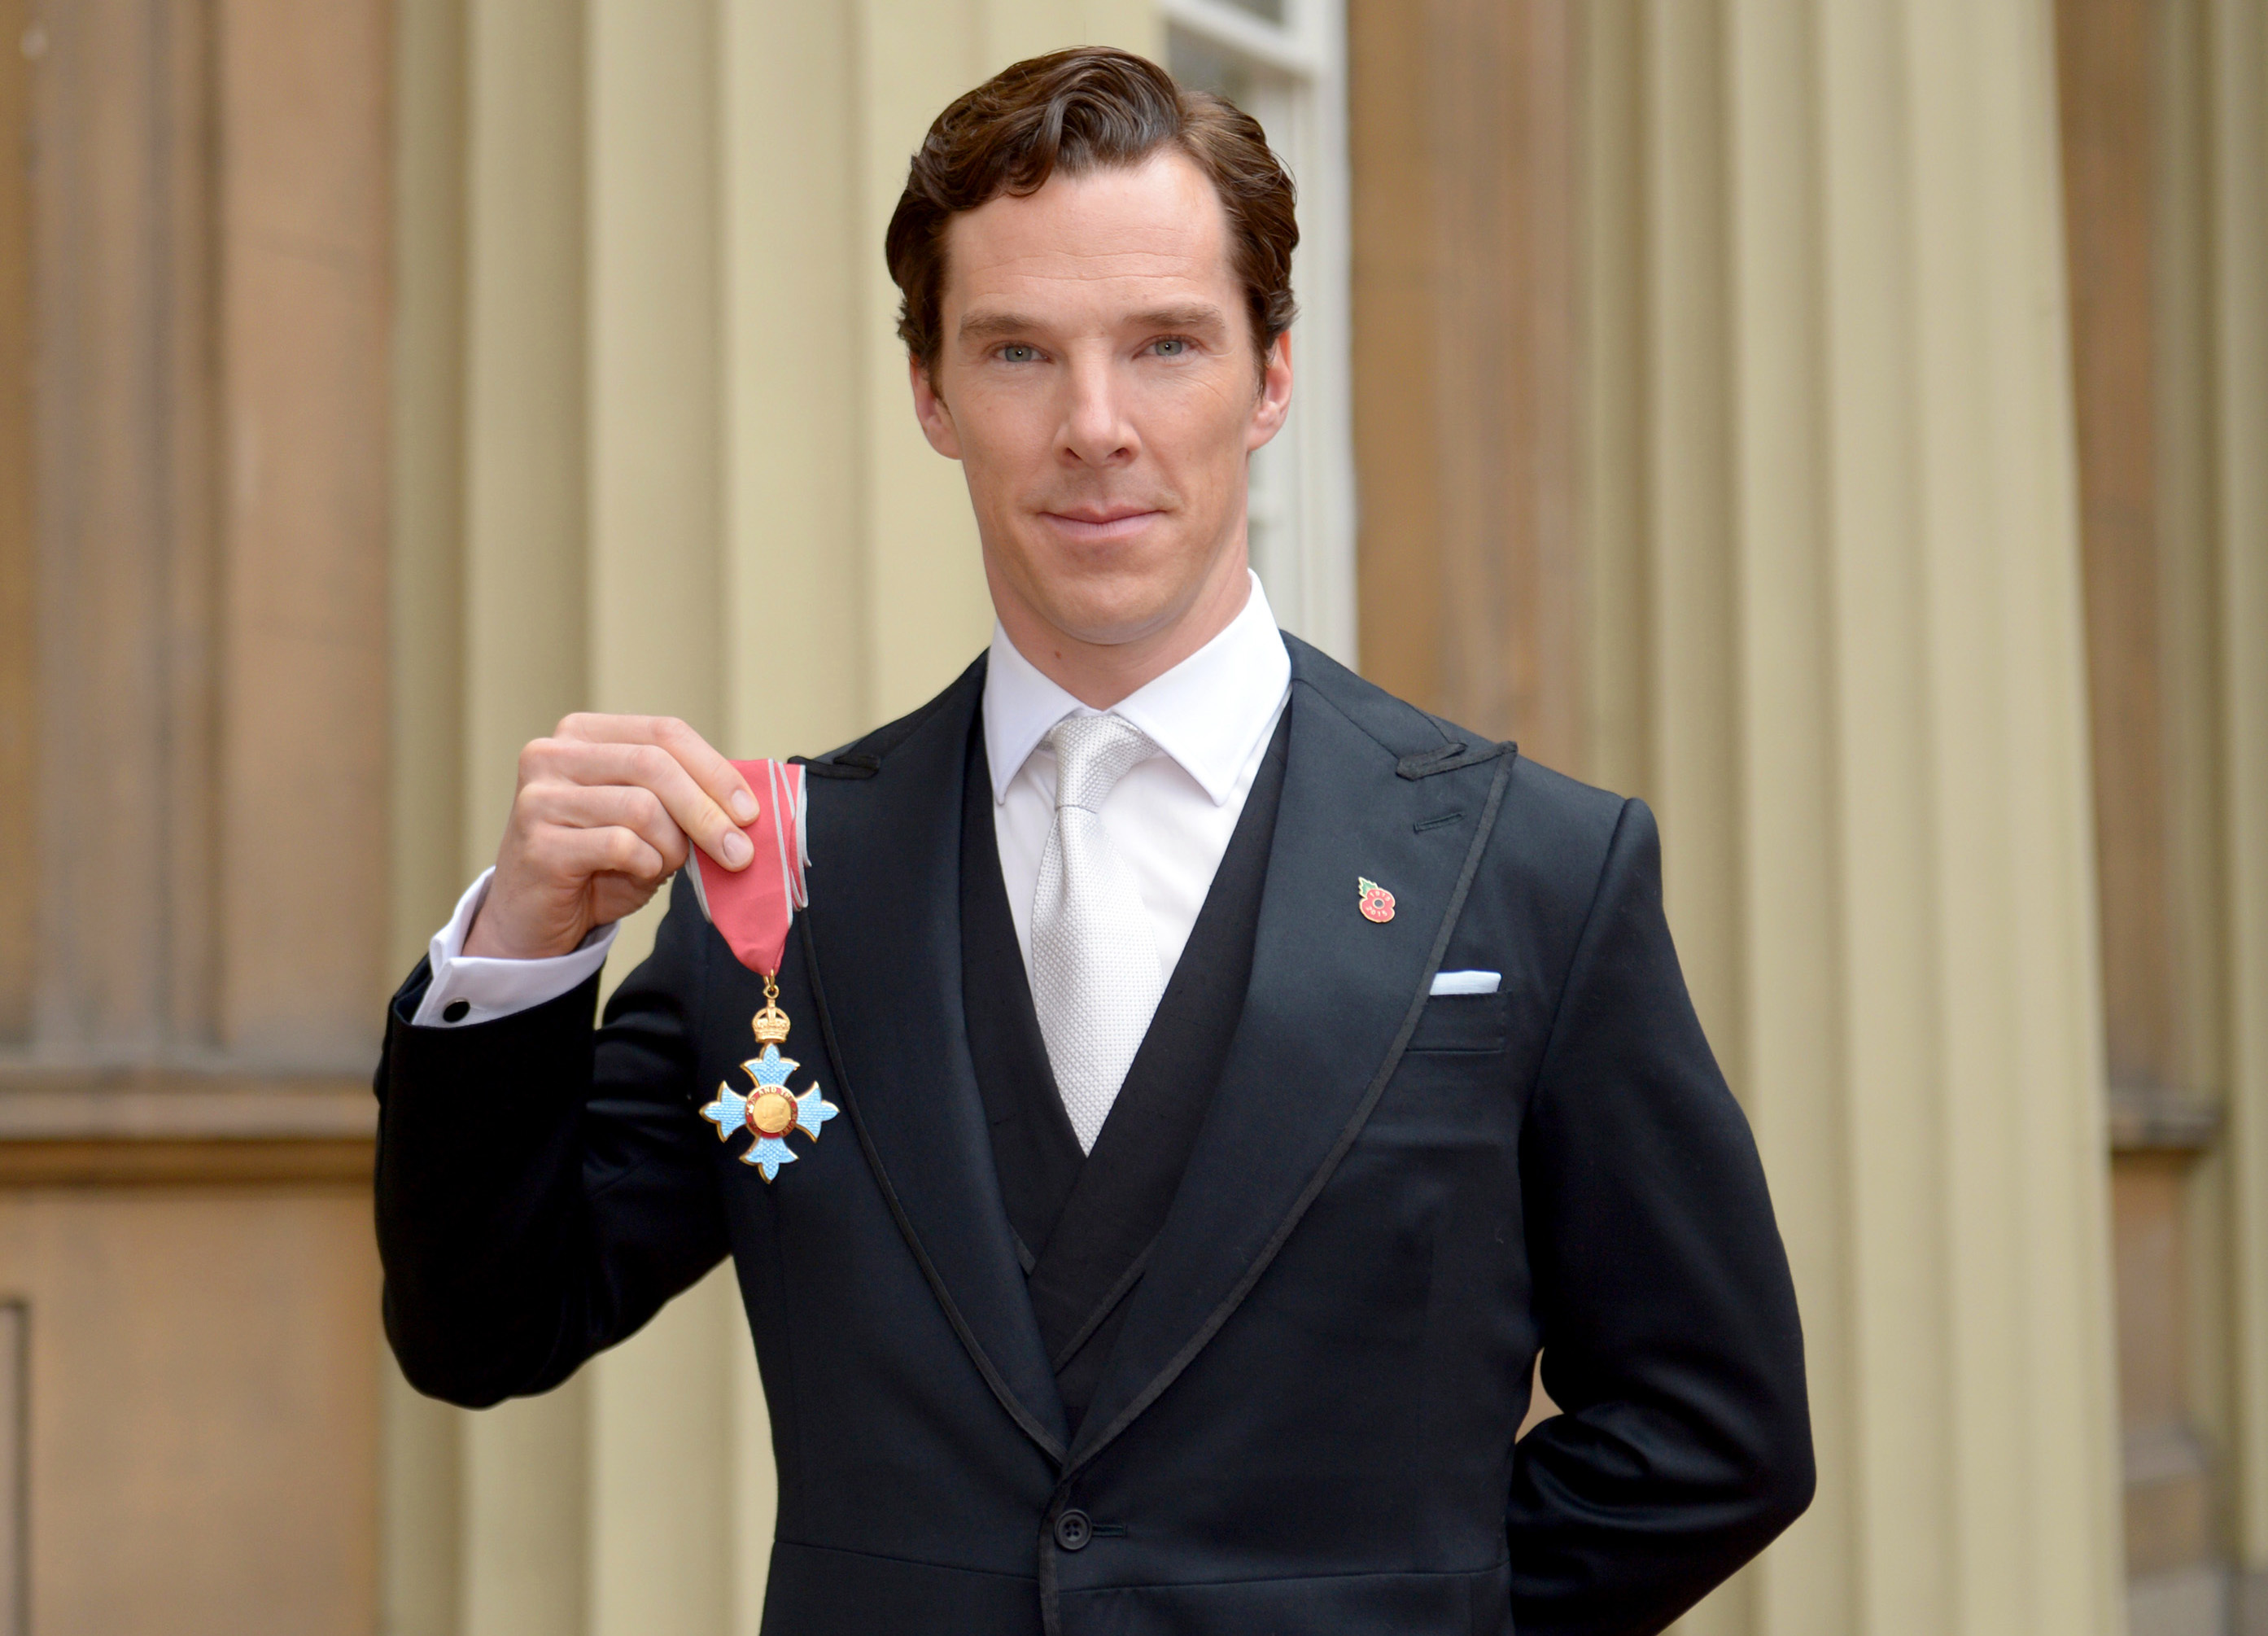 Actor Benedict Cumberbatch after receiving the CBE (Commander of the Order of the British Empire) from Queen Elizabeth II for services to the performing arts and to charity at Buckingham Palace on November 10, 2015 in London, England.